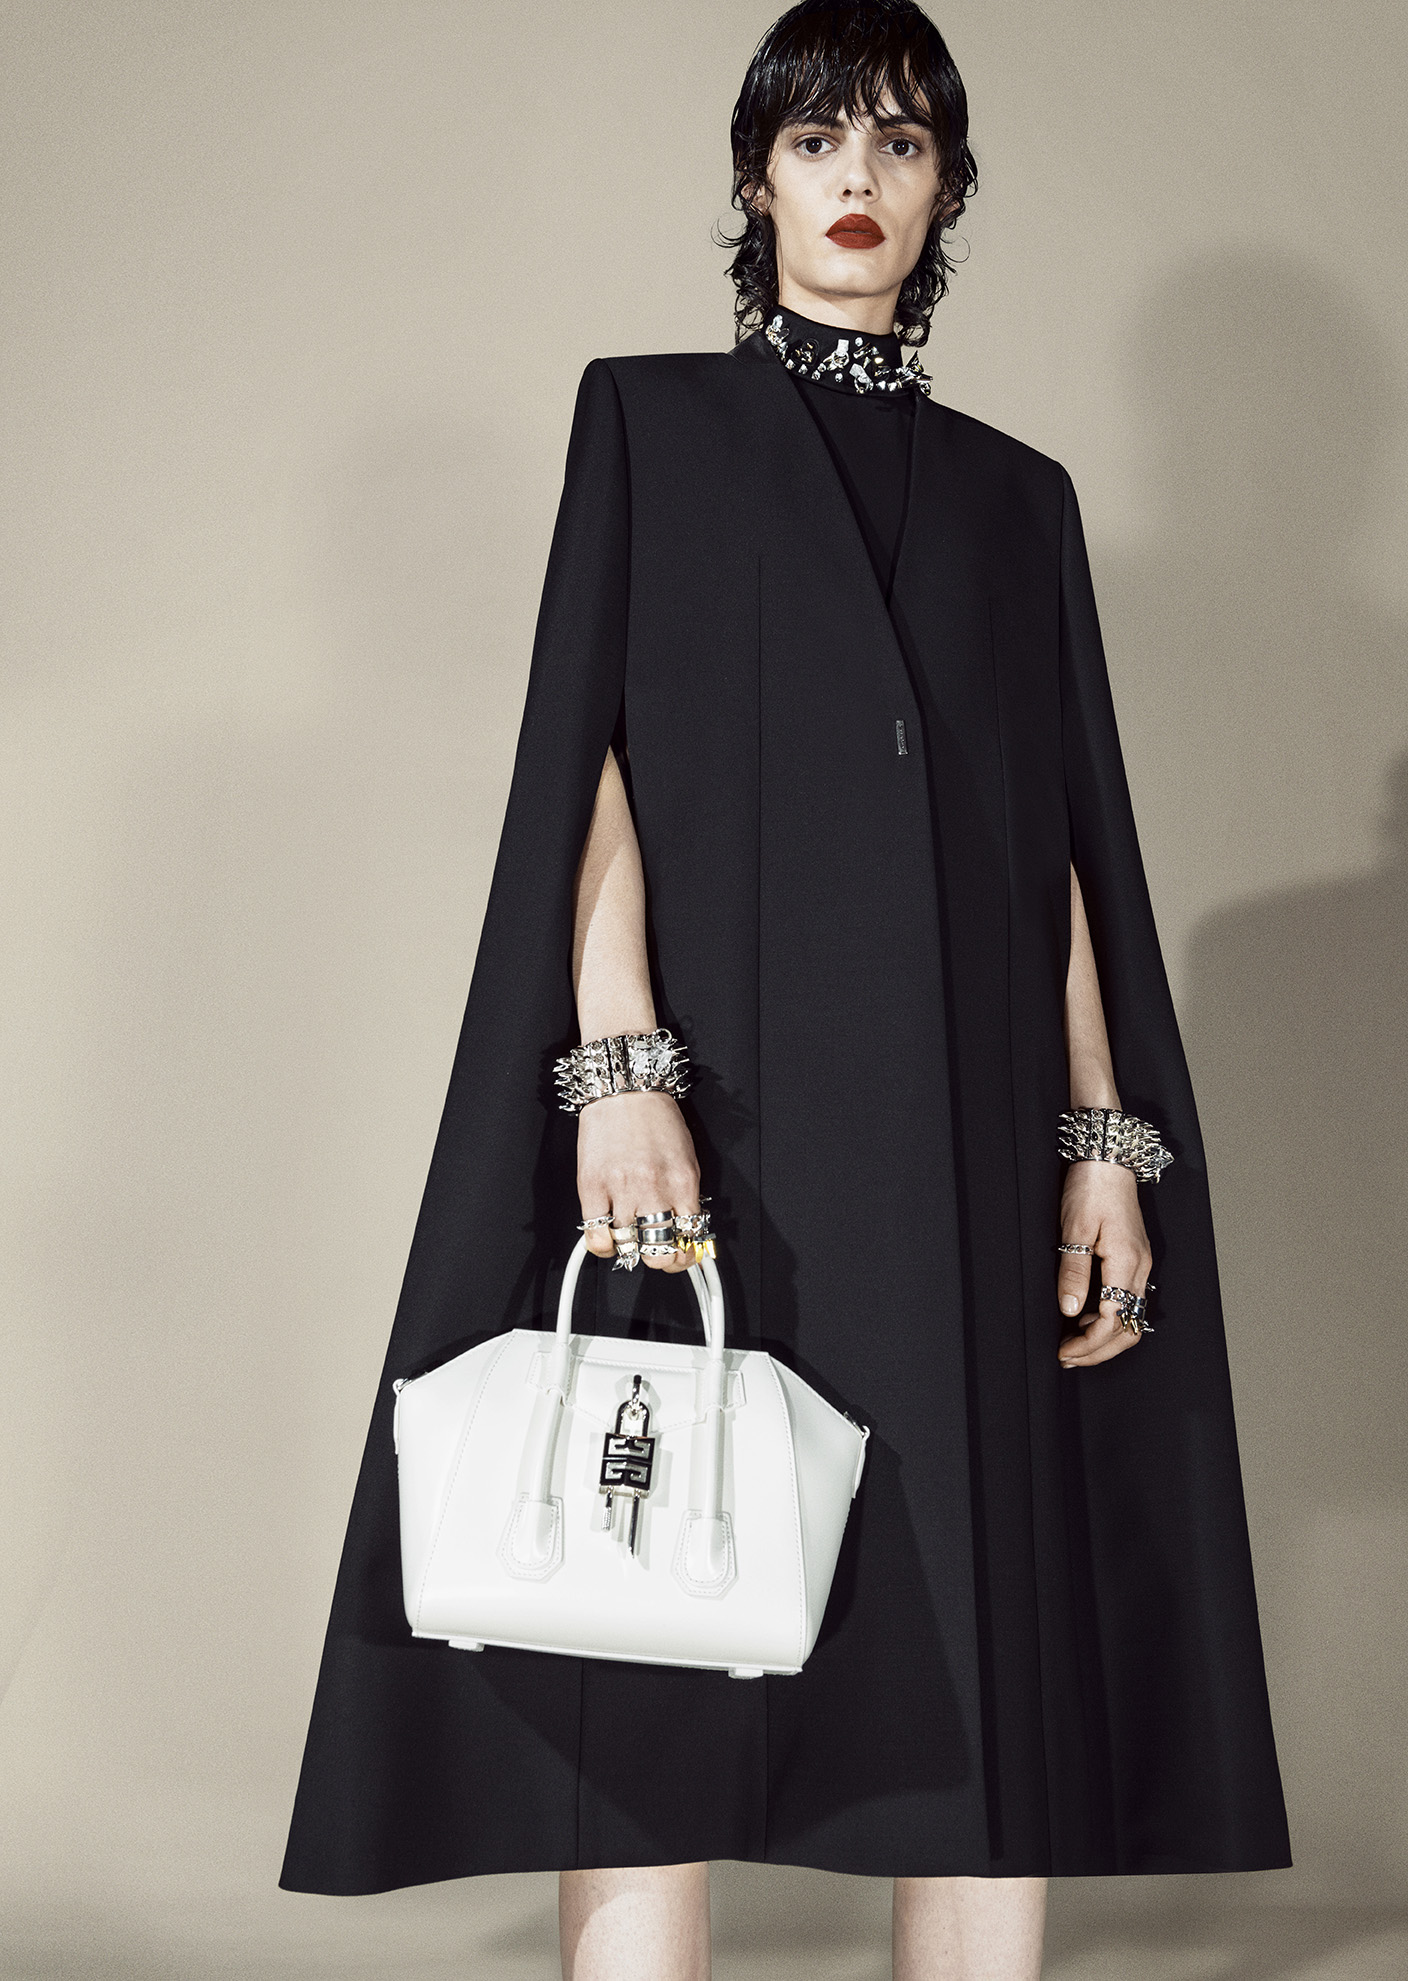 Givenchy Fall 2021 Fashion Show Photos